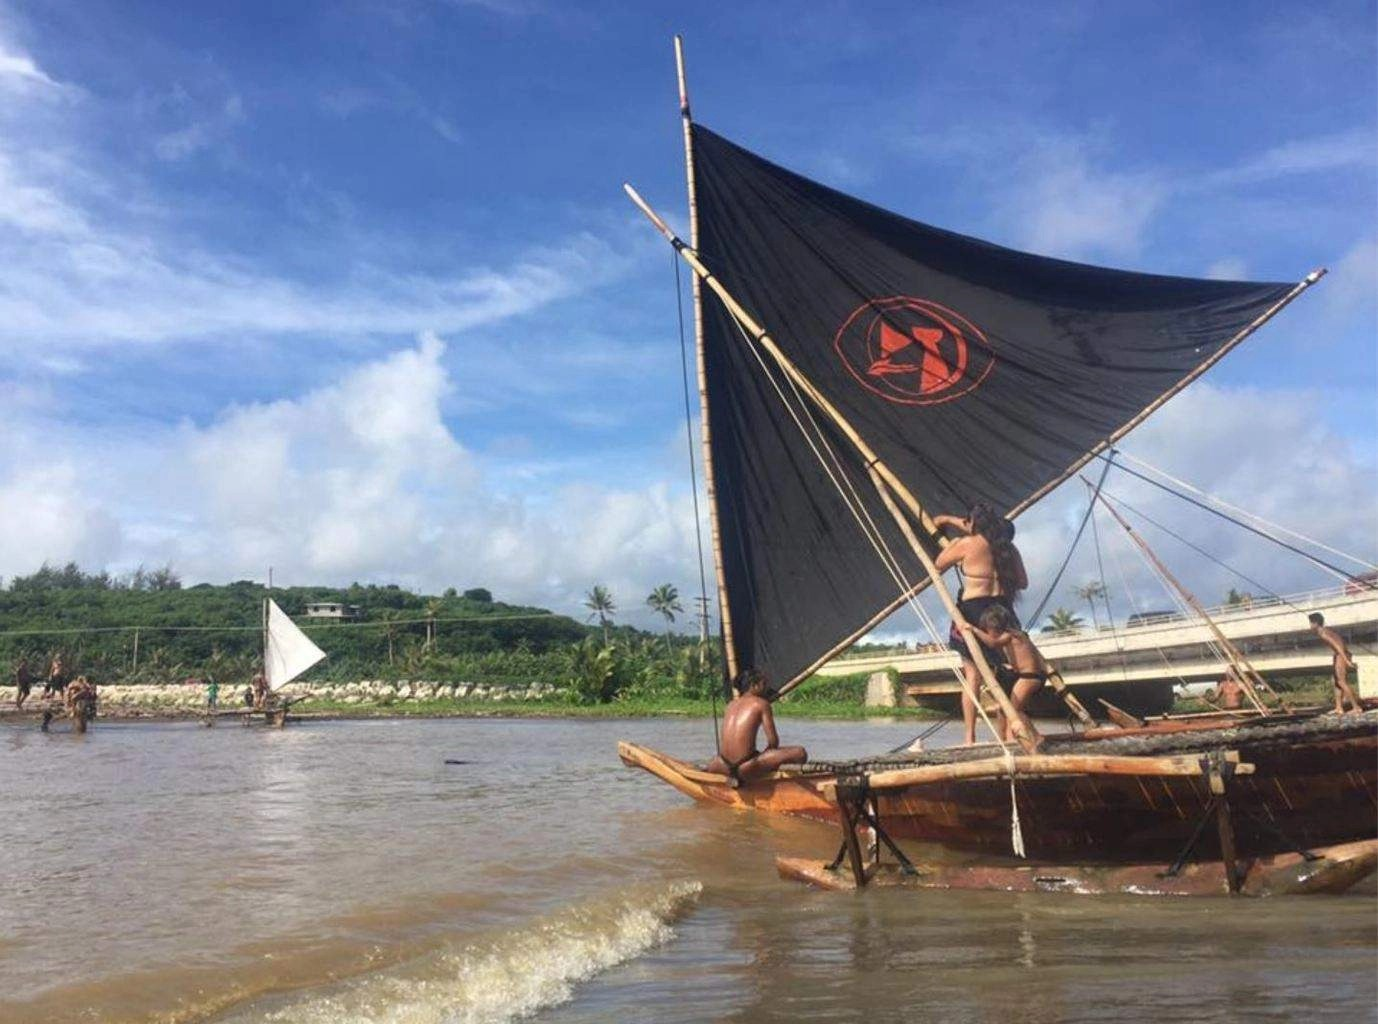 I Fiestan Sahyan Tasi - The Festival of the Canoes - Tradition, Heritage, Culture, Adventure, Tours, History, Chamorro, Guam, Canoes